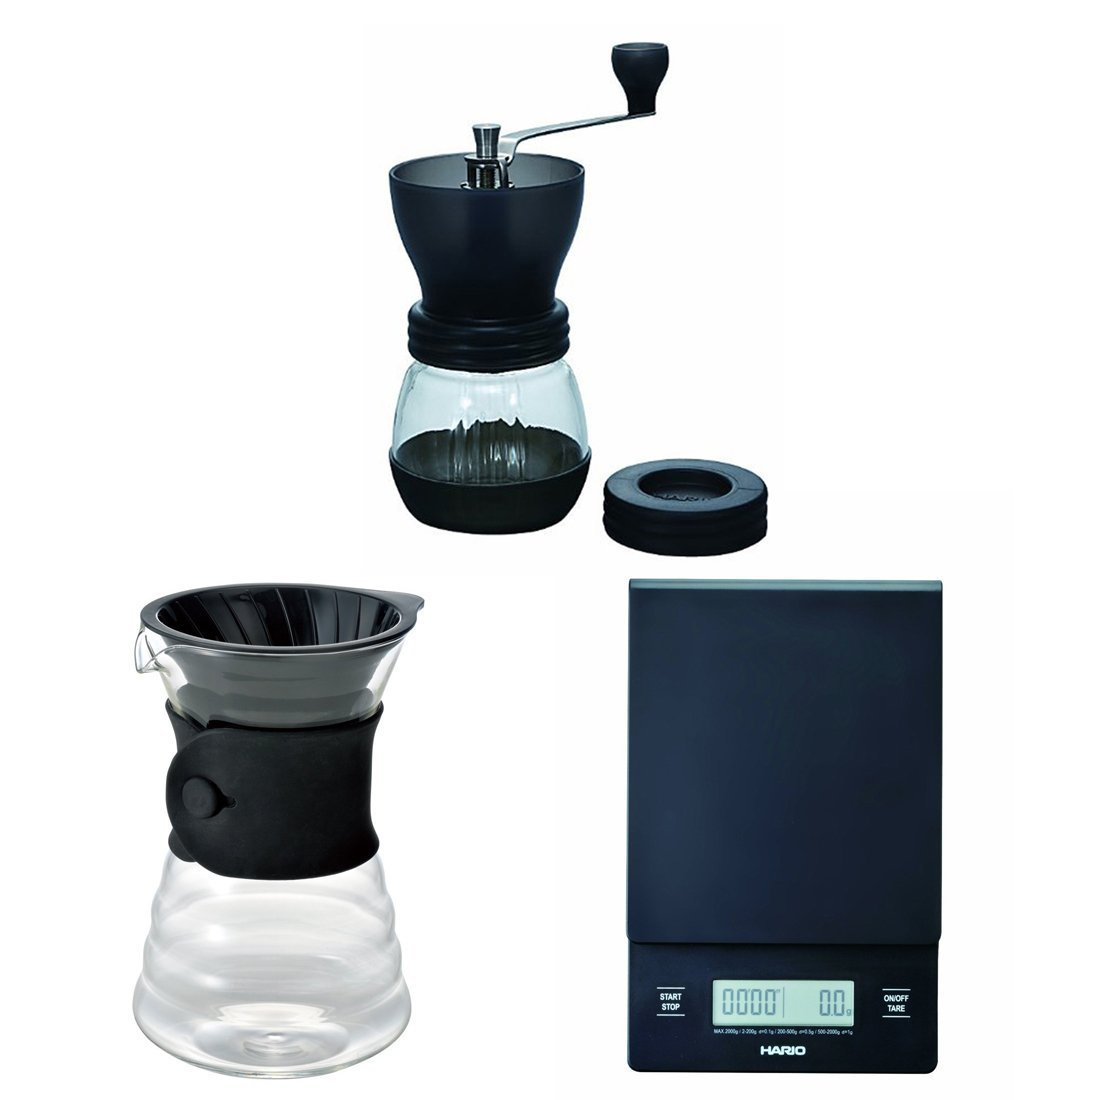 Hario V60 Scale, Decanter & Coffee Mill - Three Products All Sold Together VST-2000B VDD-02B. MSCS-2TB